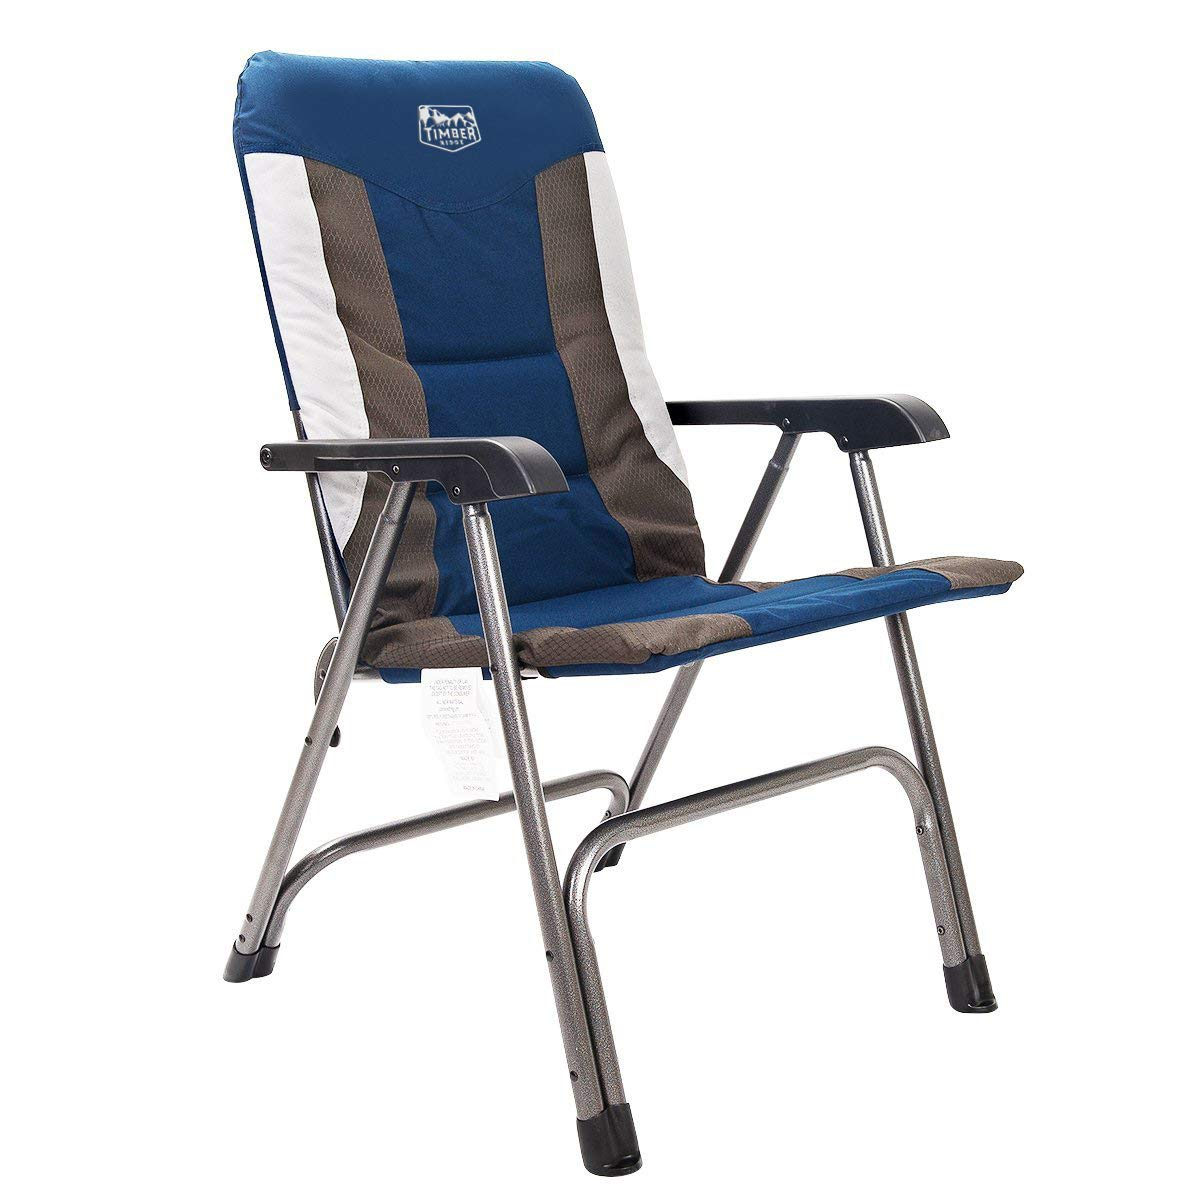 High Back Folding Lawn Chairs.Timber Ridge Camping Folding Chair High Back Portable With Carry Bag Arm Chair Easy Set Up Padded For Outdoor Lawn Garden Lightweight Aluminum